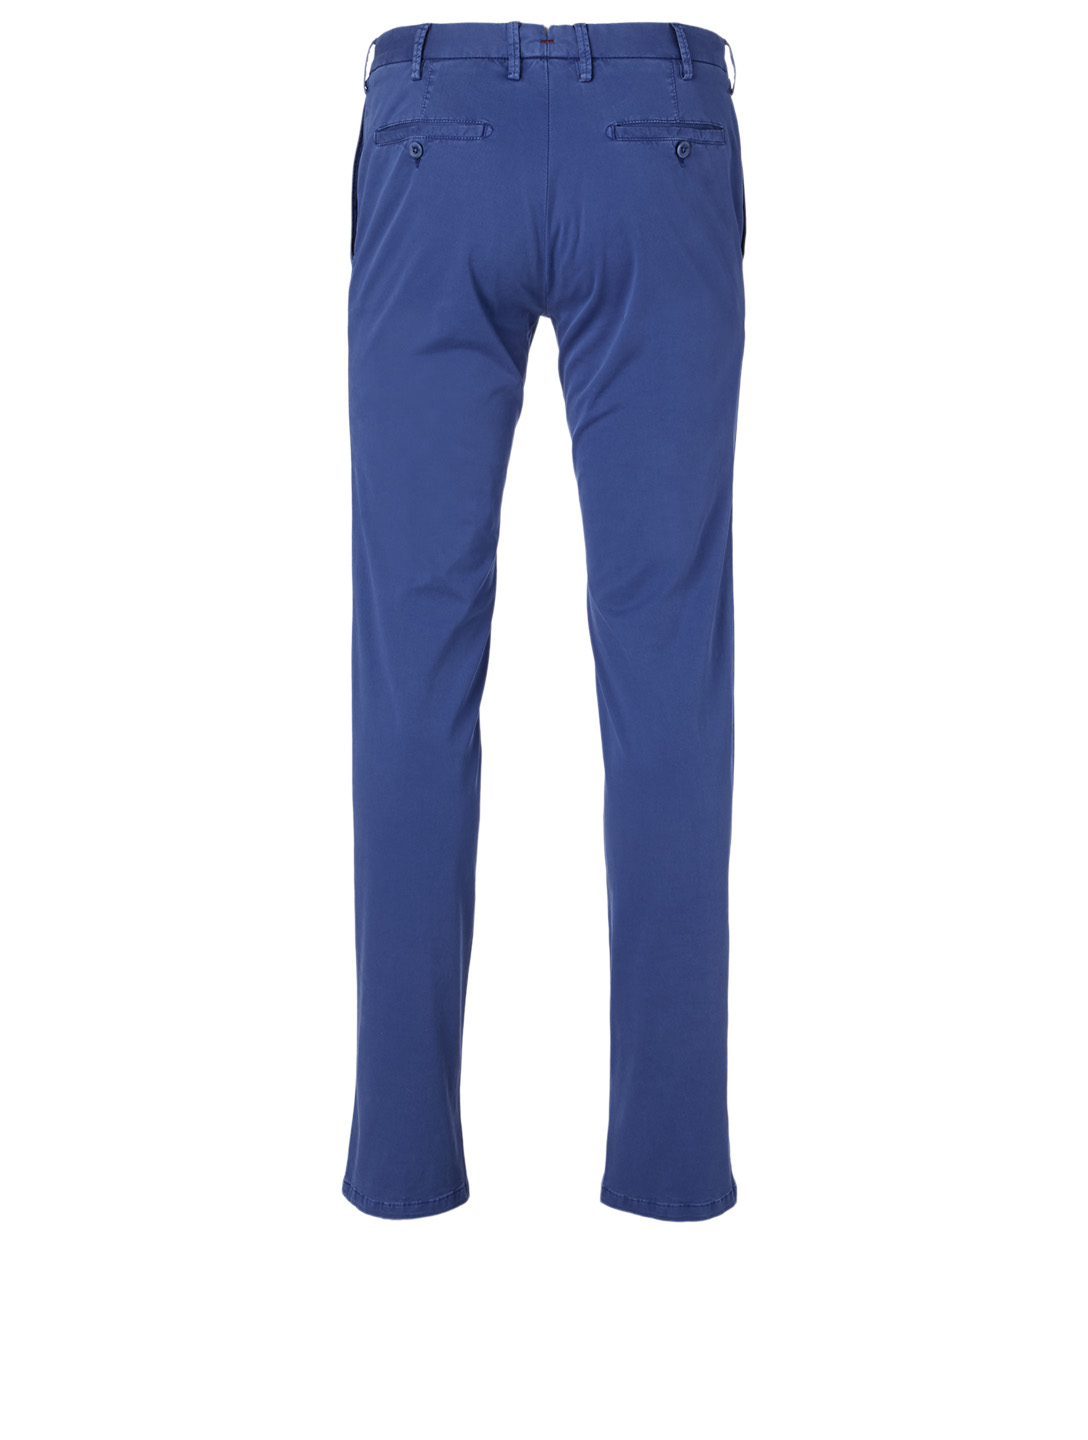 ISAIA Stretch Cotton Pants Men's Blue